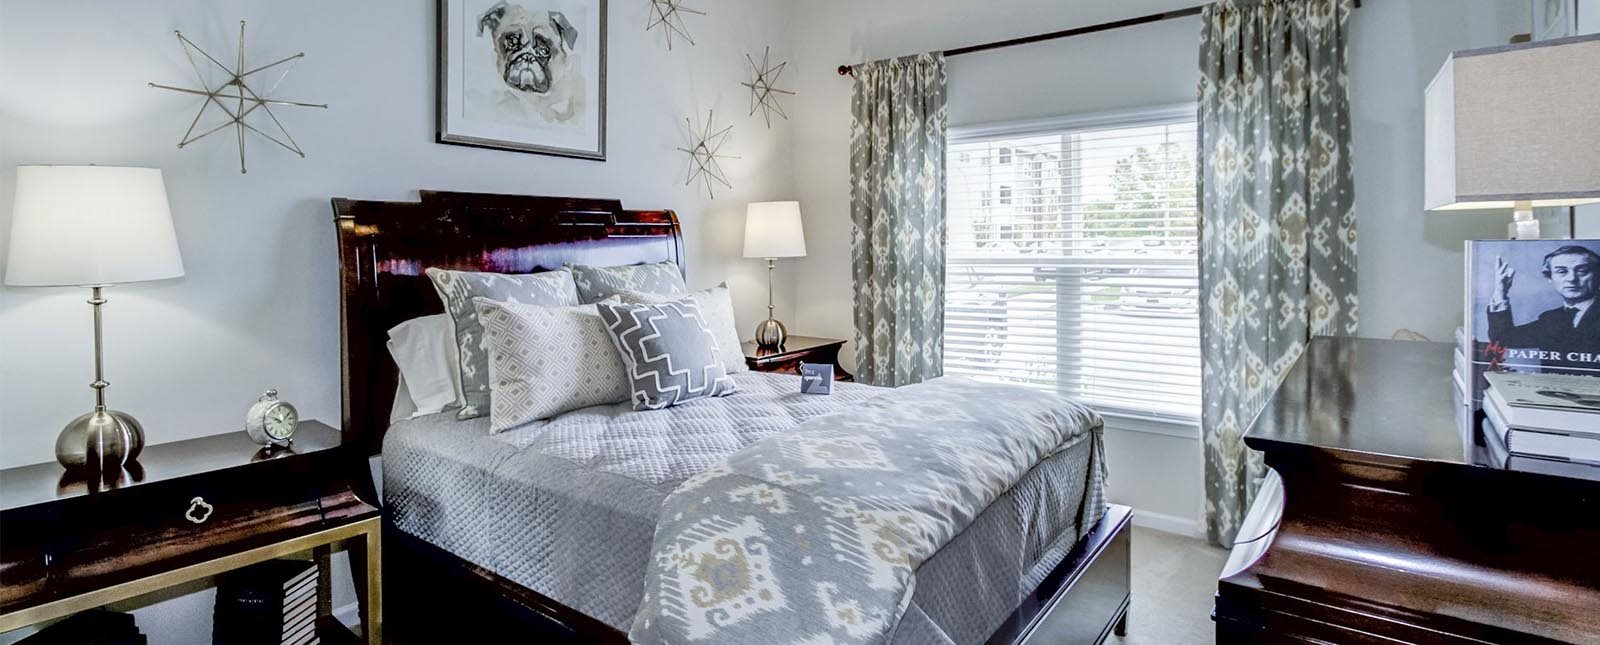 Two Bedroom guest bedroom The Haven luxury apartments in Malvern, PA